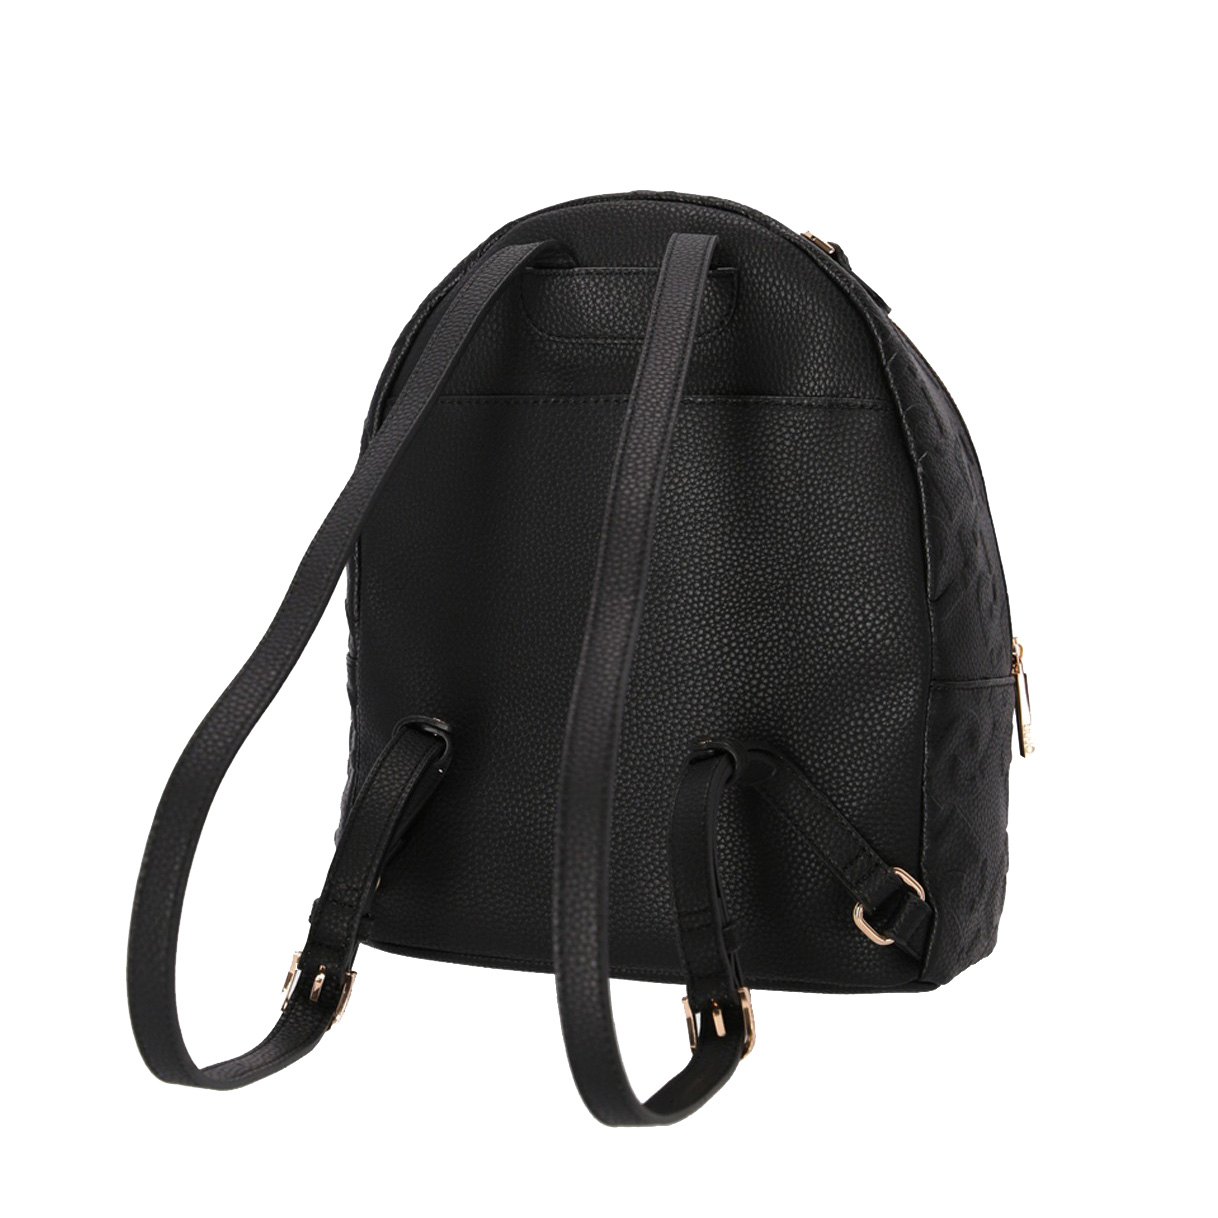 M Backpack Trapuntato LIU JO